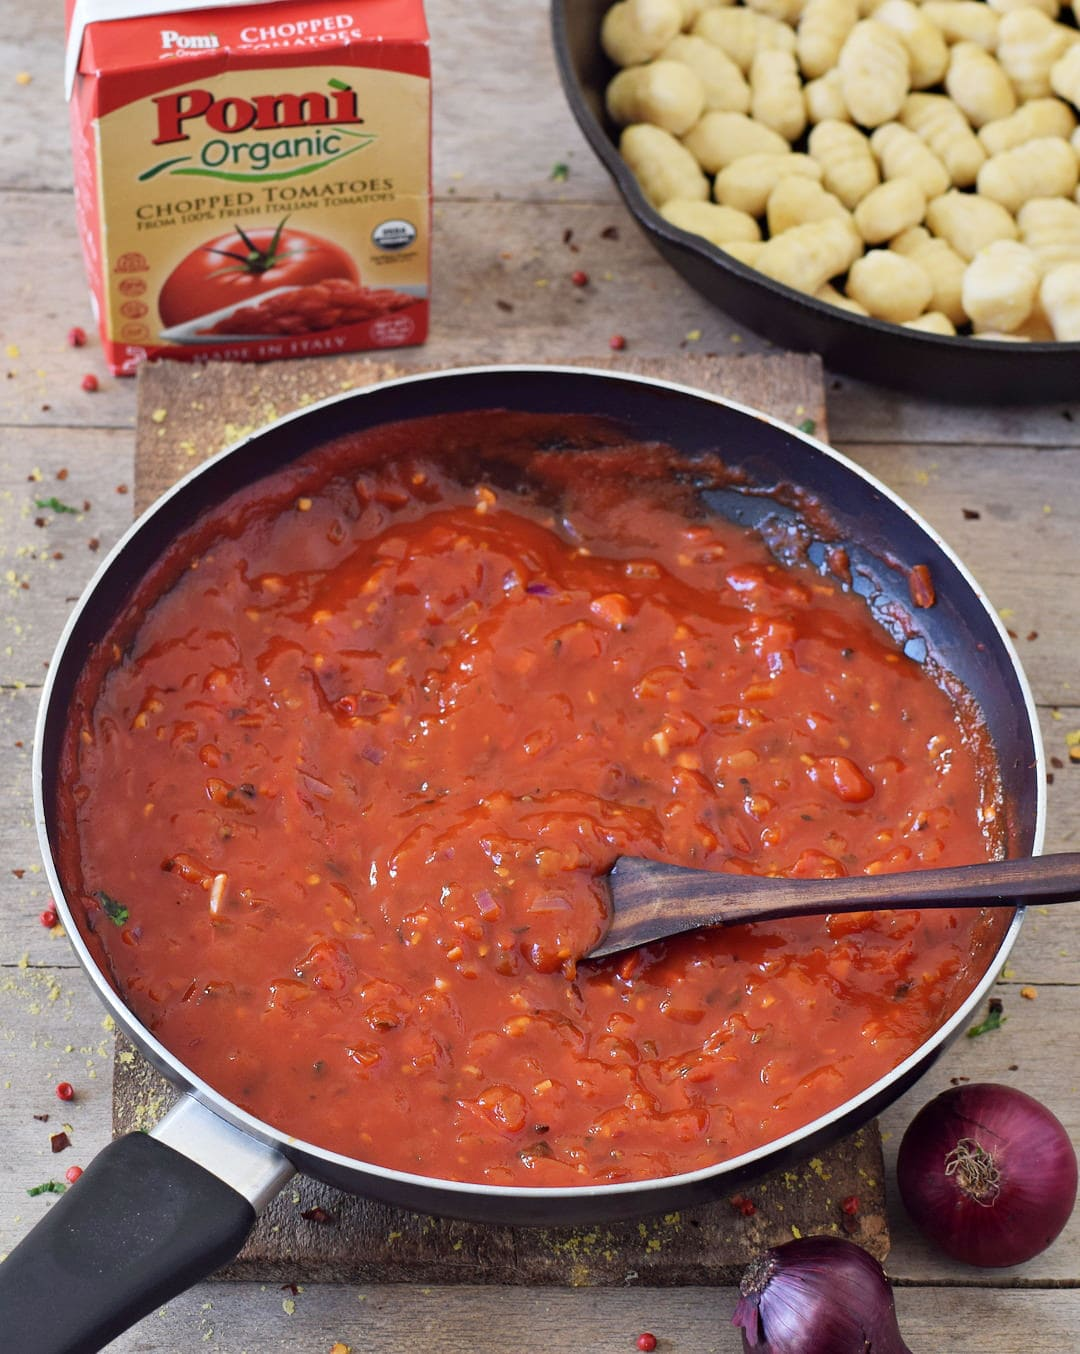 gnocchi all'arrabbiata sauce made with pomi chopped tomatoes